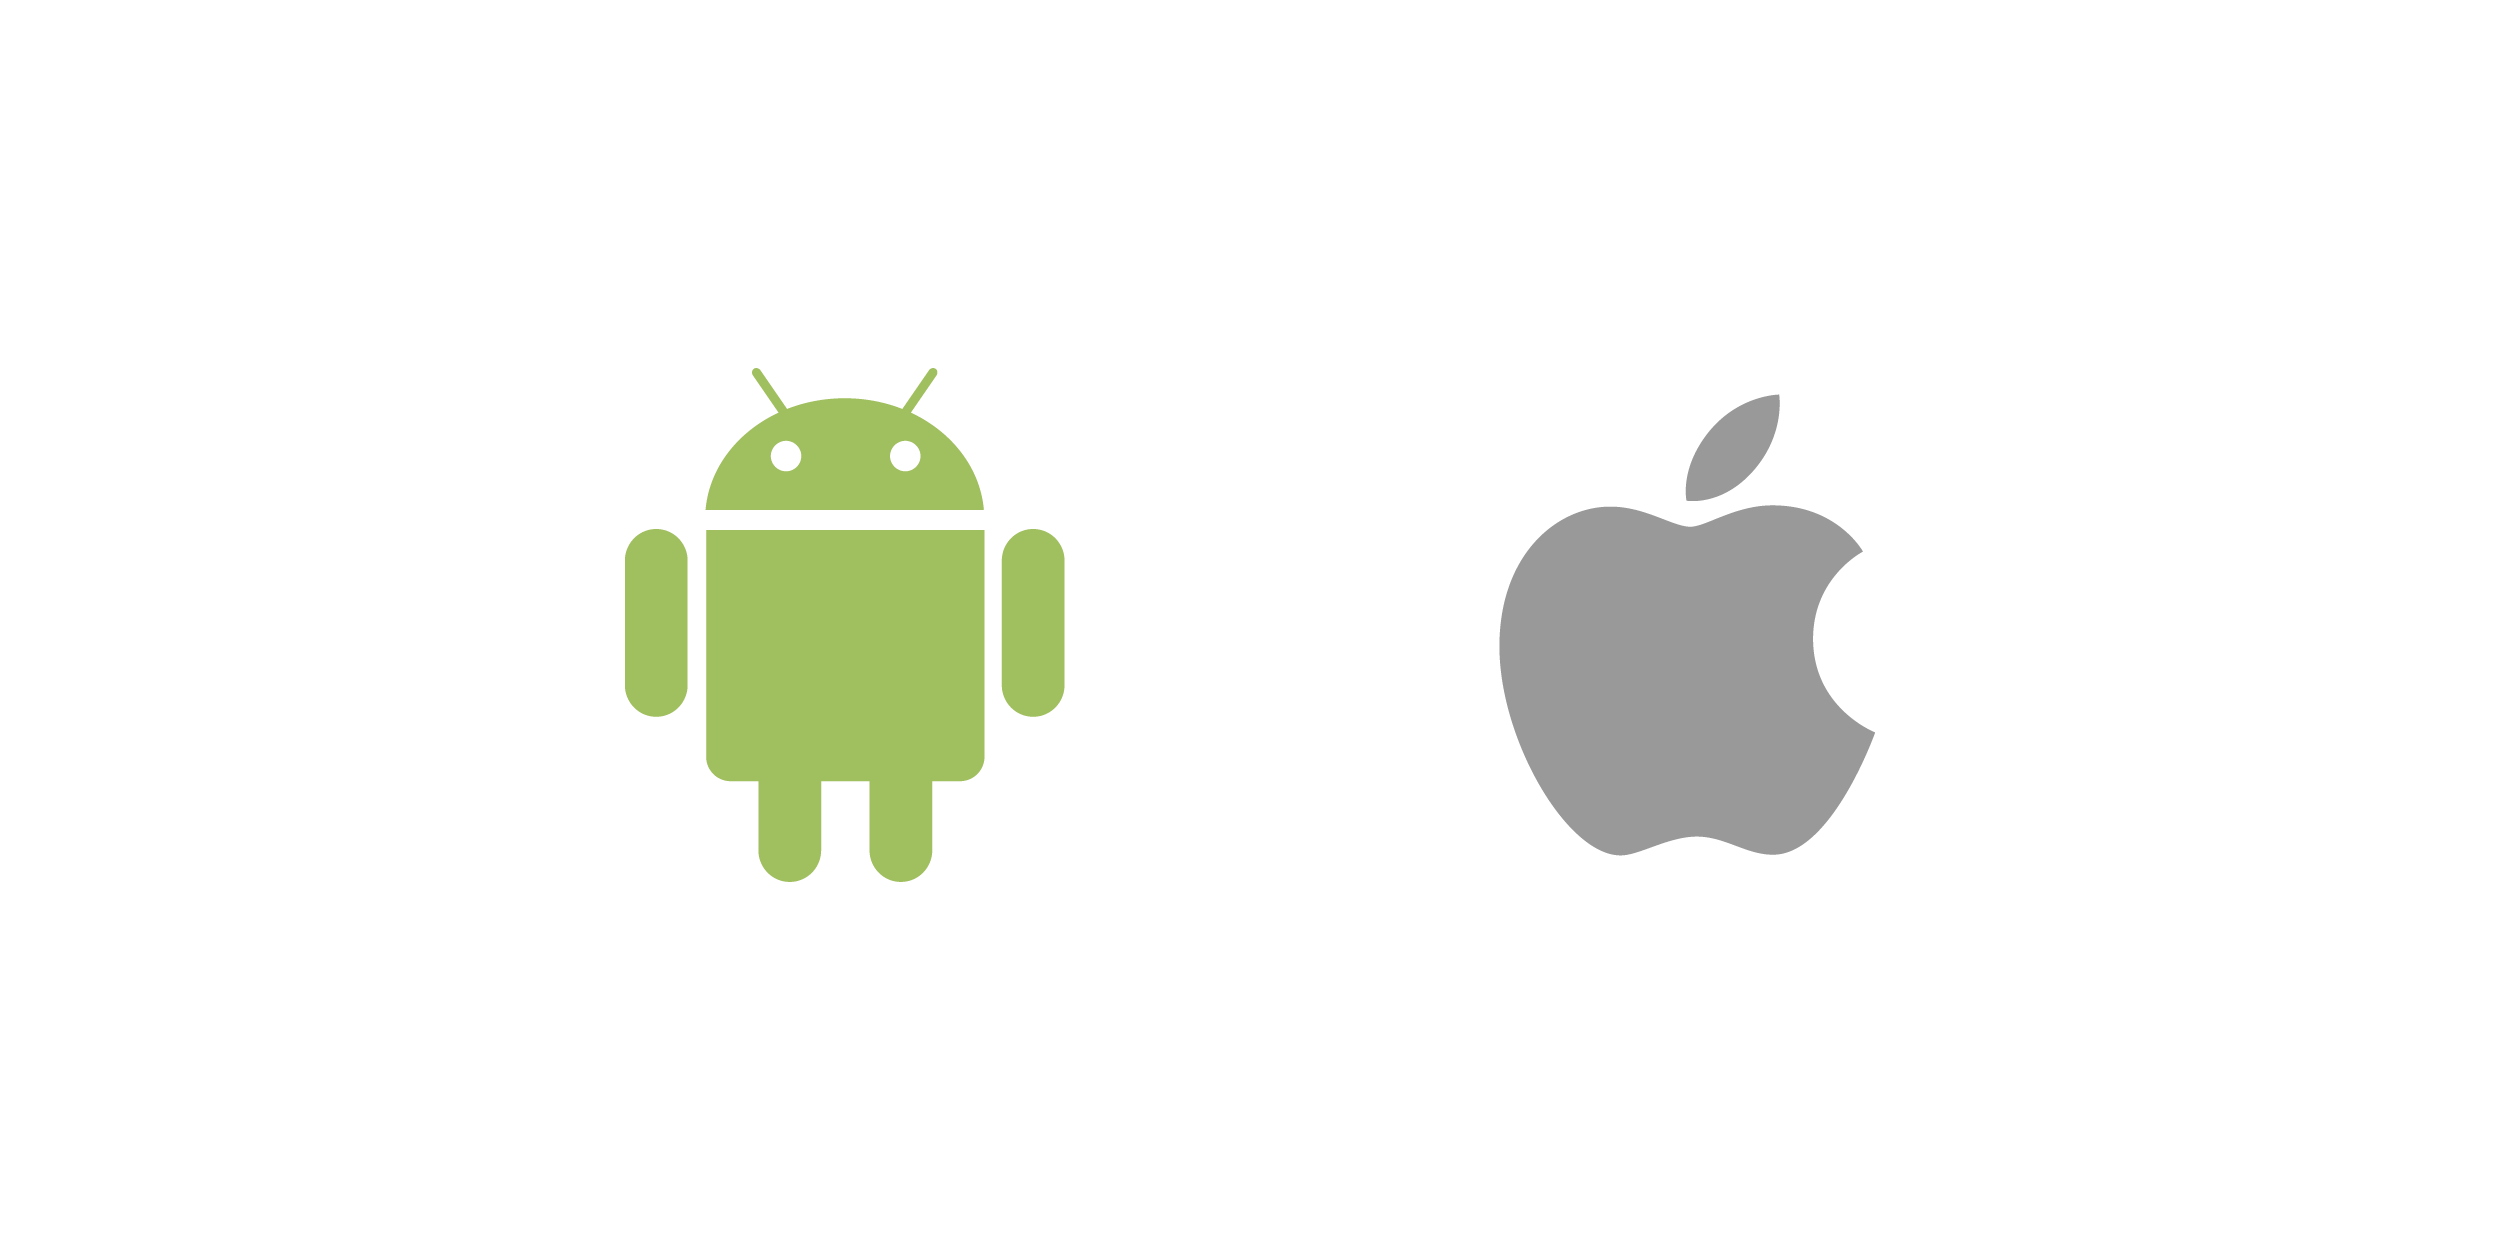 myMOBILE solution for iOS and Android